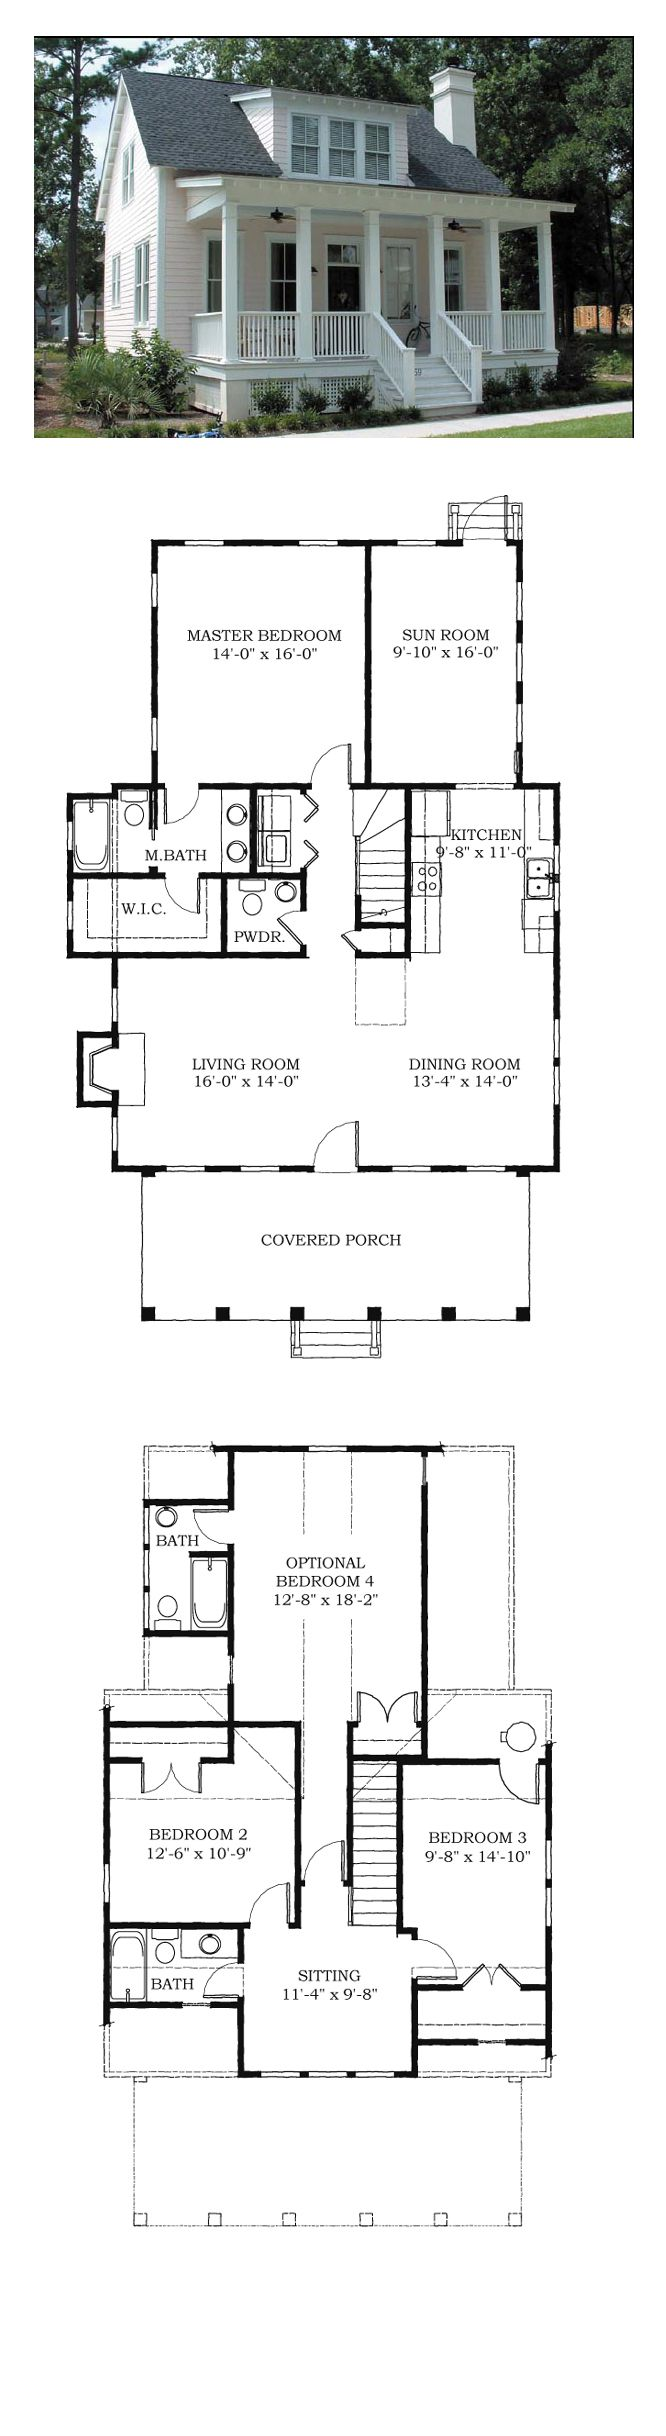 3 bedroom 2 bathroom house designs - Cool House Plan Id Total Living Area 1783 Sq 4 Bedrooms And Bathrooms By Dakota Smith